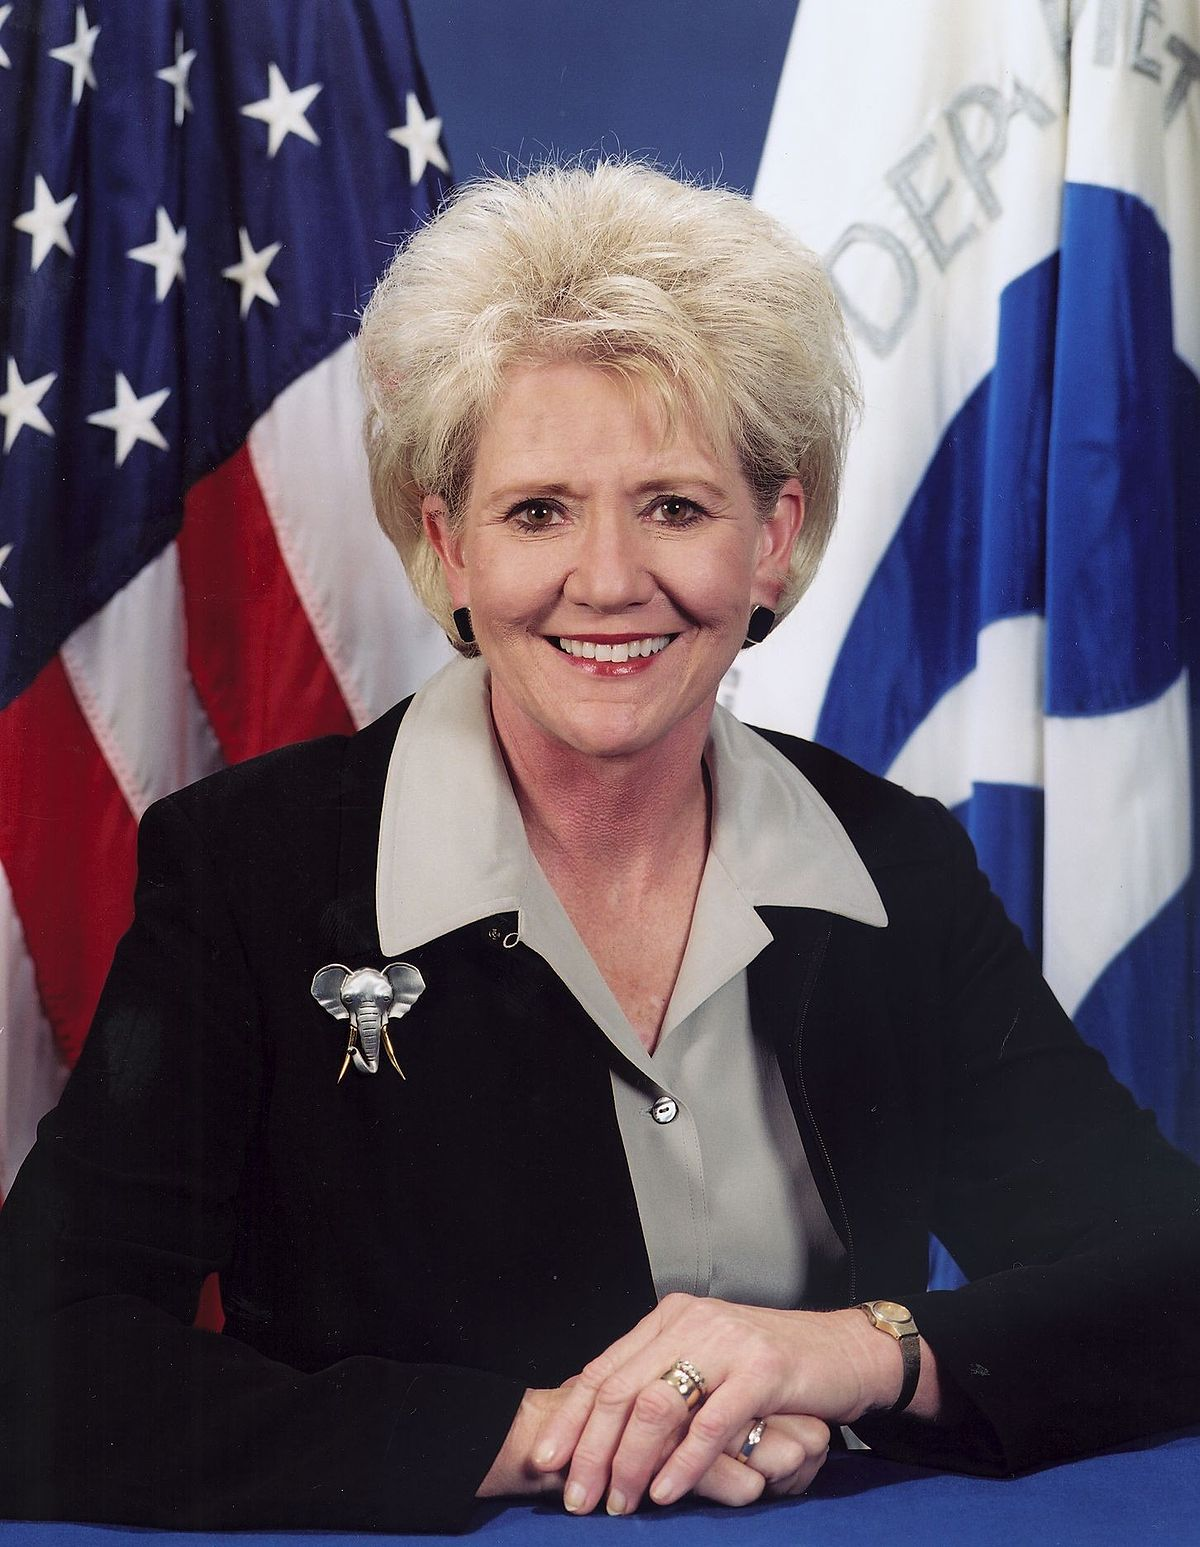 Mary Peters (politician) - Simple English Wikipedia, the free encyclopedia